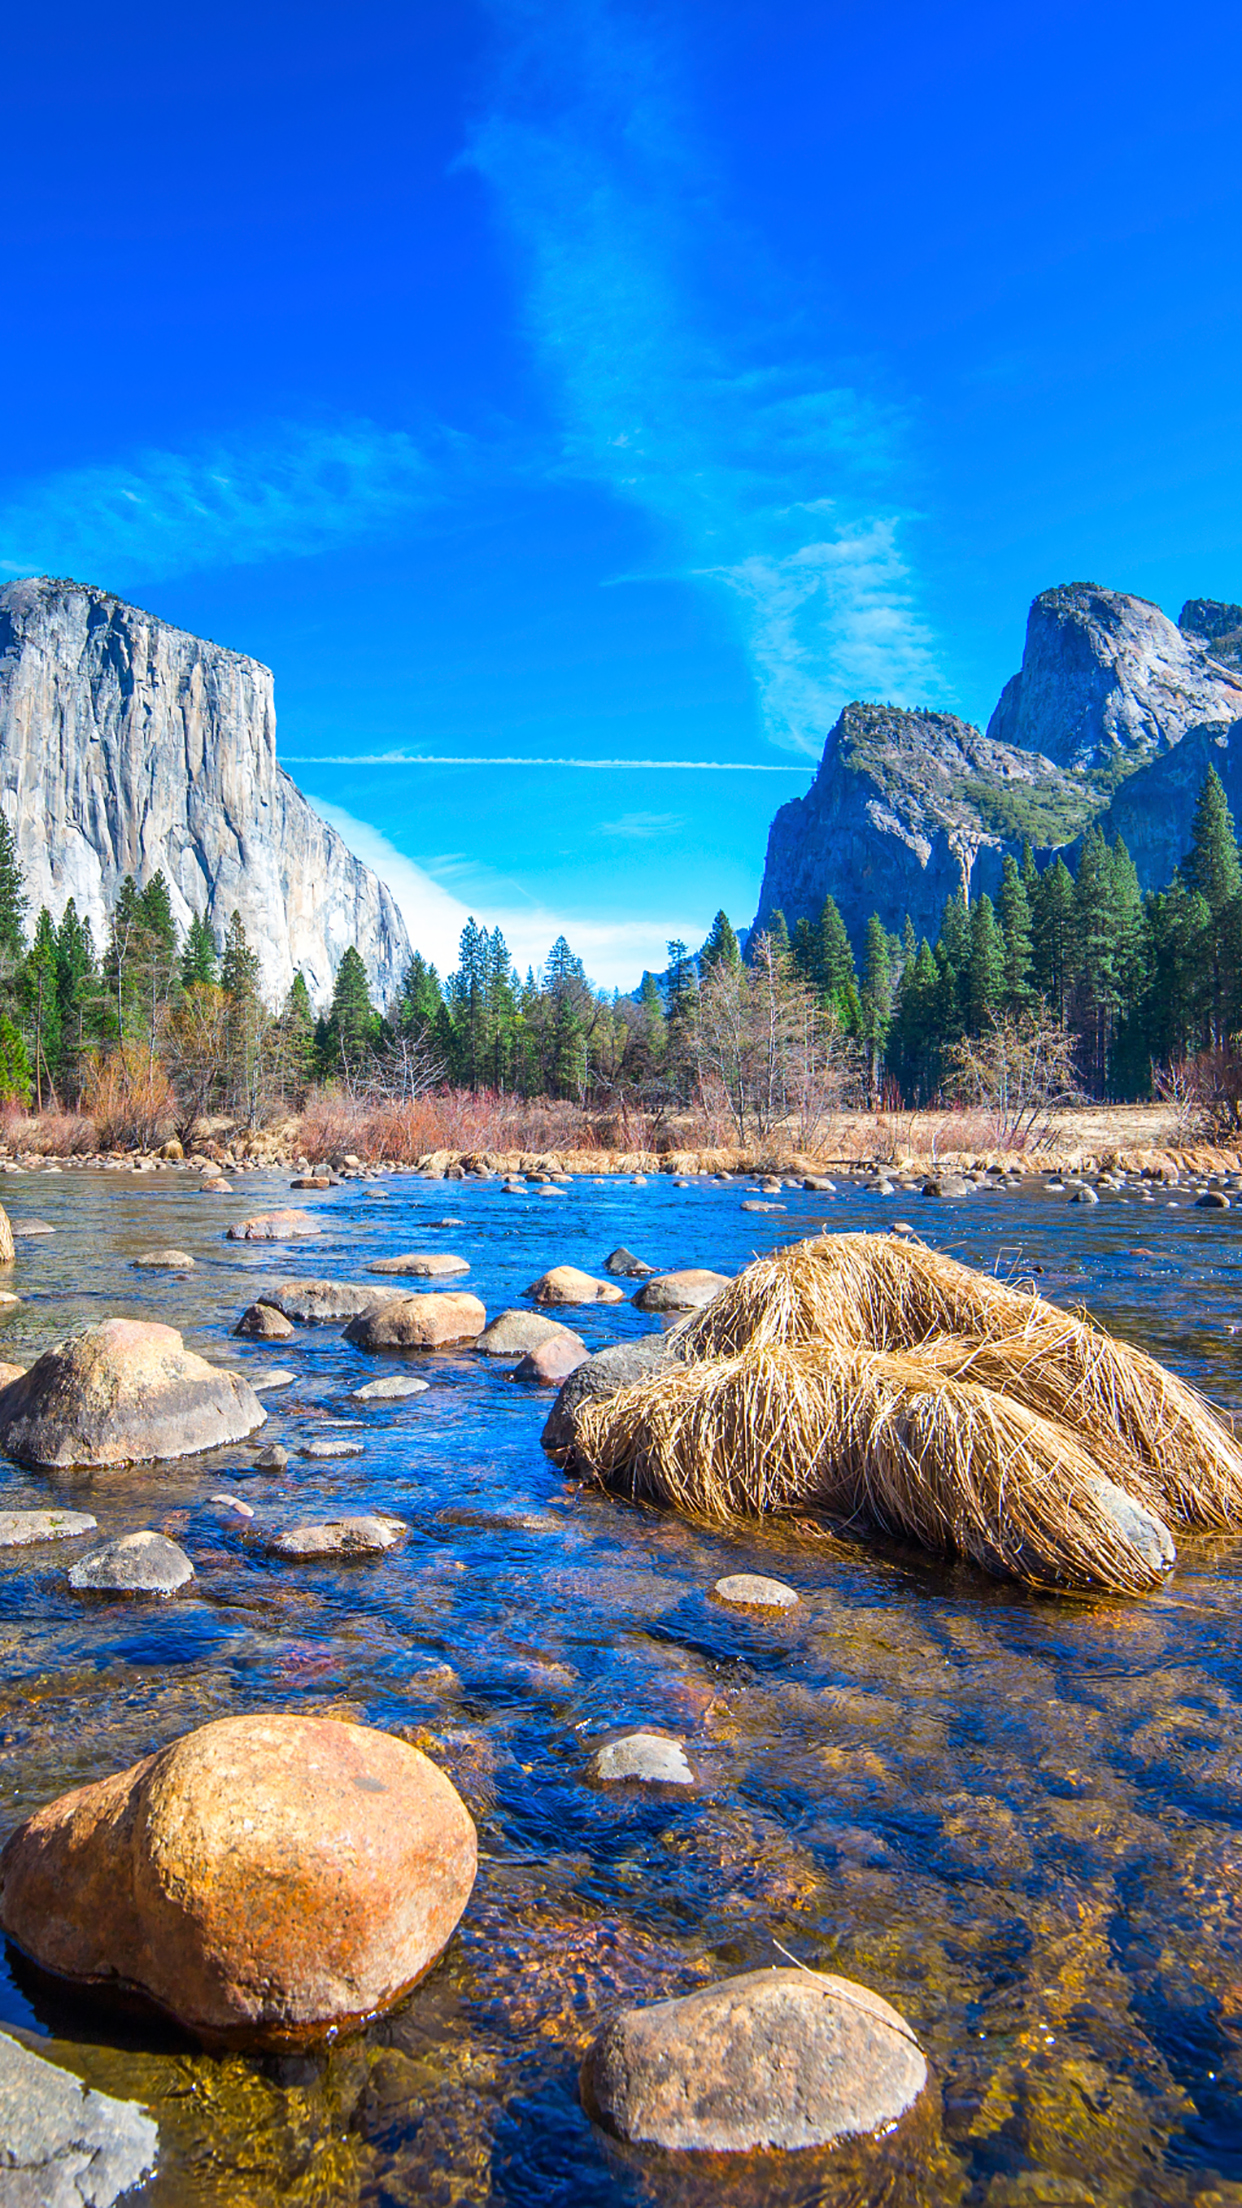 Yosemite Park 1 Wallpaper For Iphone 11 Pro Max X 8 7 6 Free Download On 3wallpapers